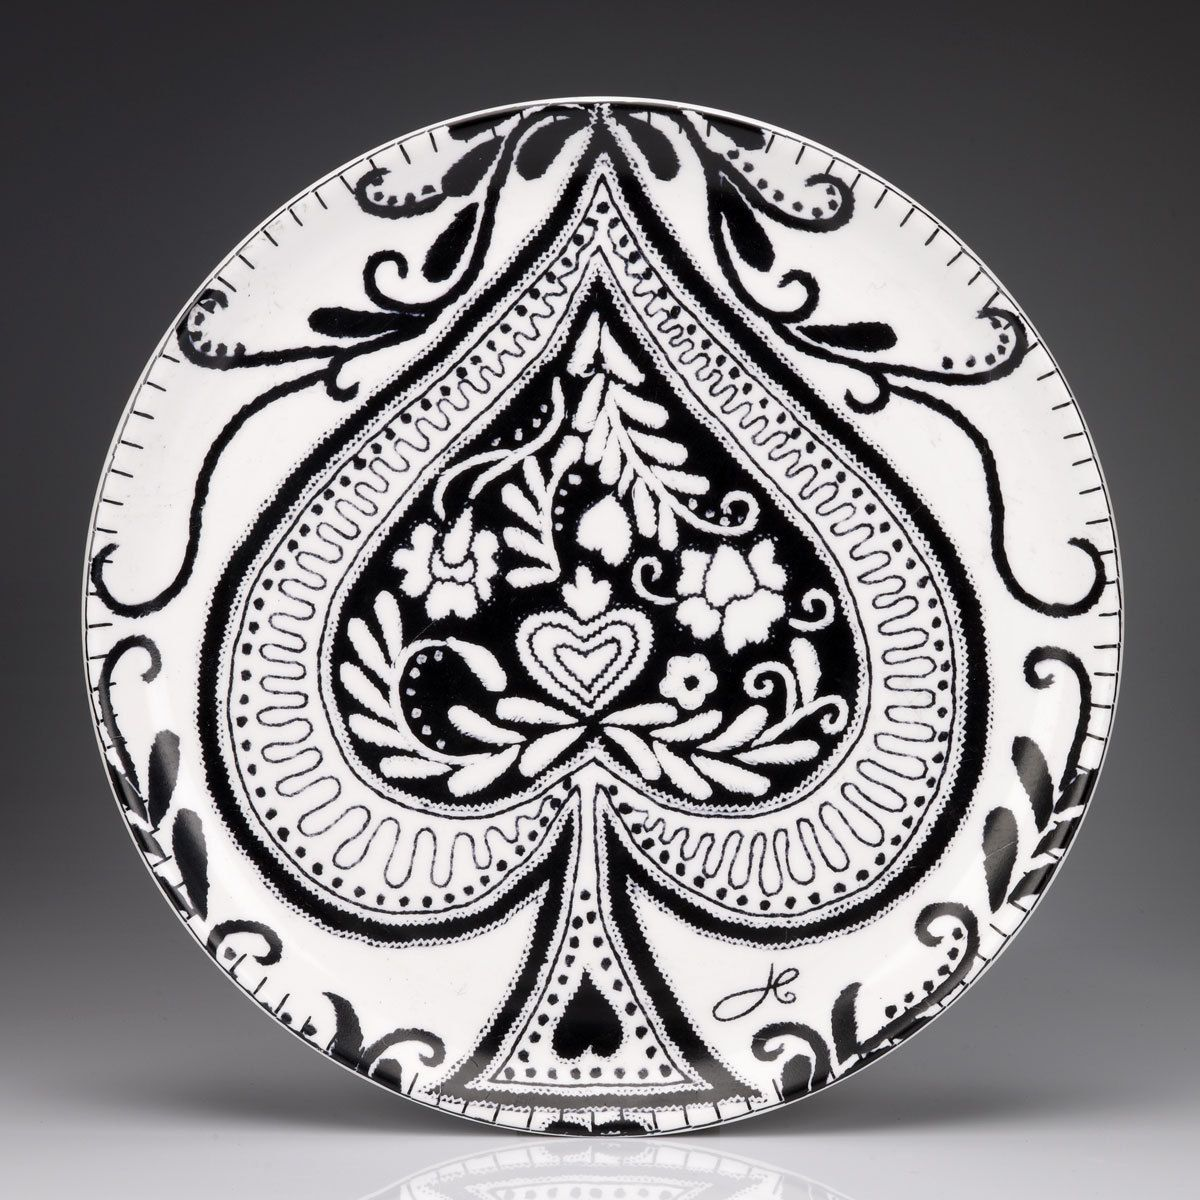 Jan constantine ace of spades collectors plate 2550 httpwww ace of spades cushion jan constantine buycottarizona Images